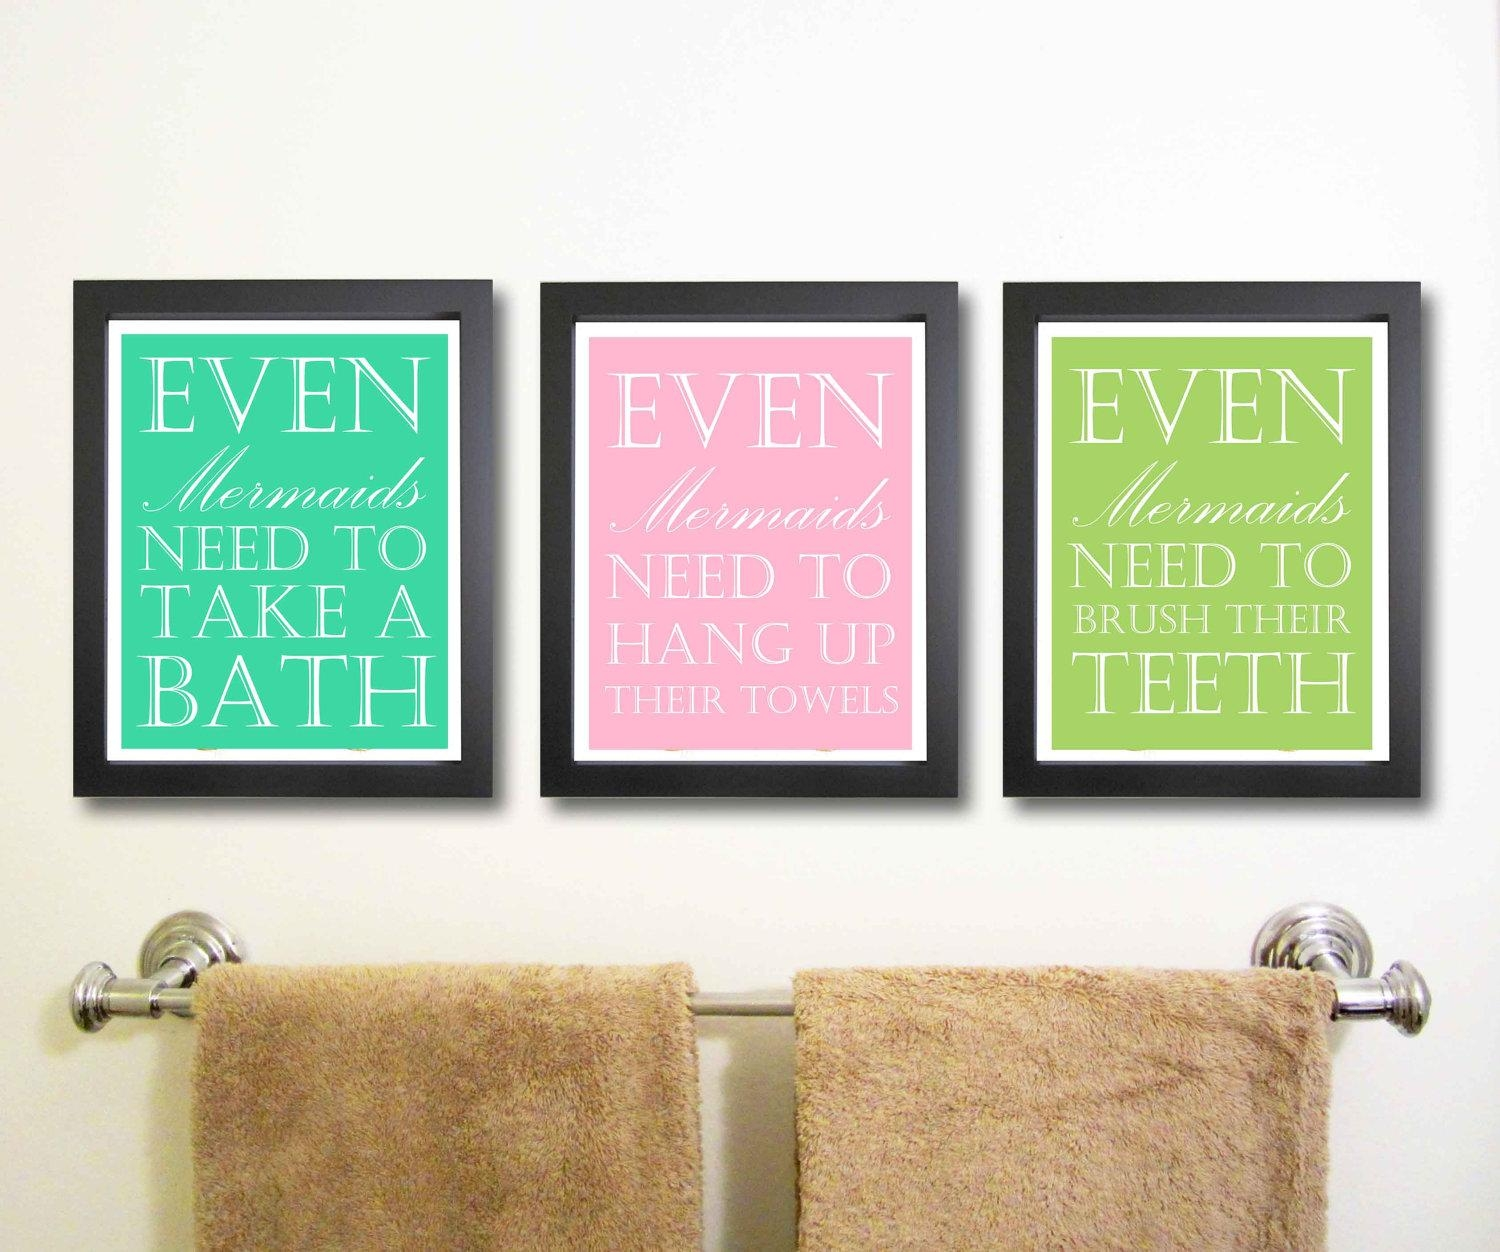 Bathroom : Impressive Bathroom Wall Art With Black Framed Hanging Pertaining To Black And White Bathroom Wall Art (Image 2 of 20)